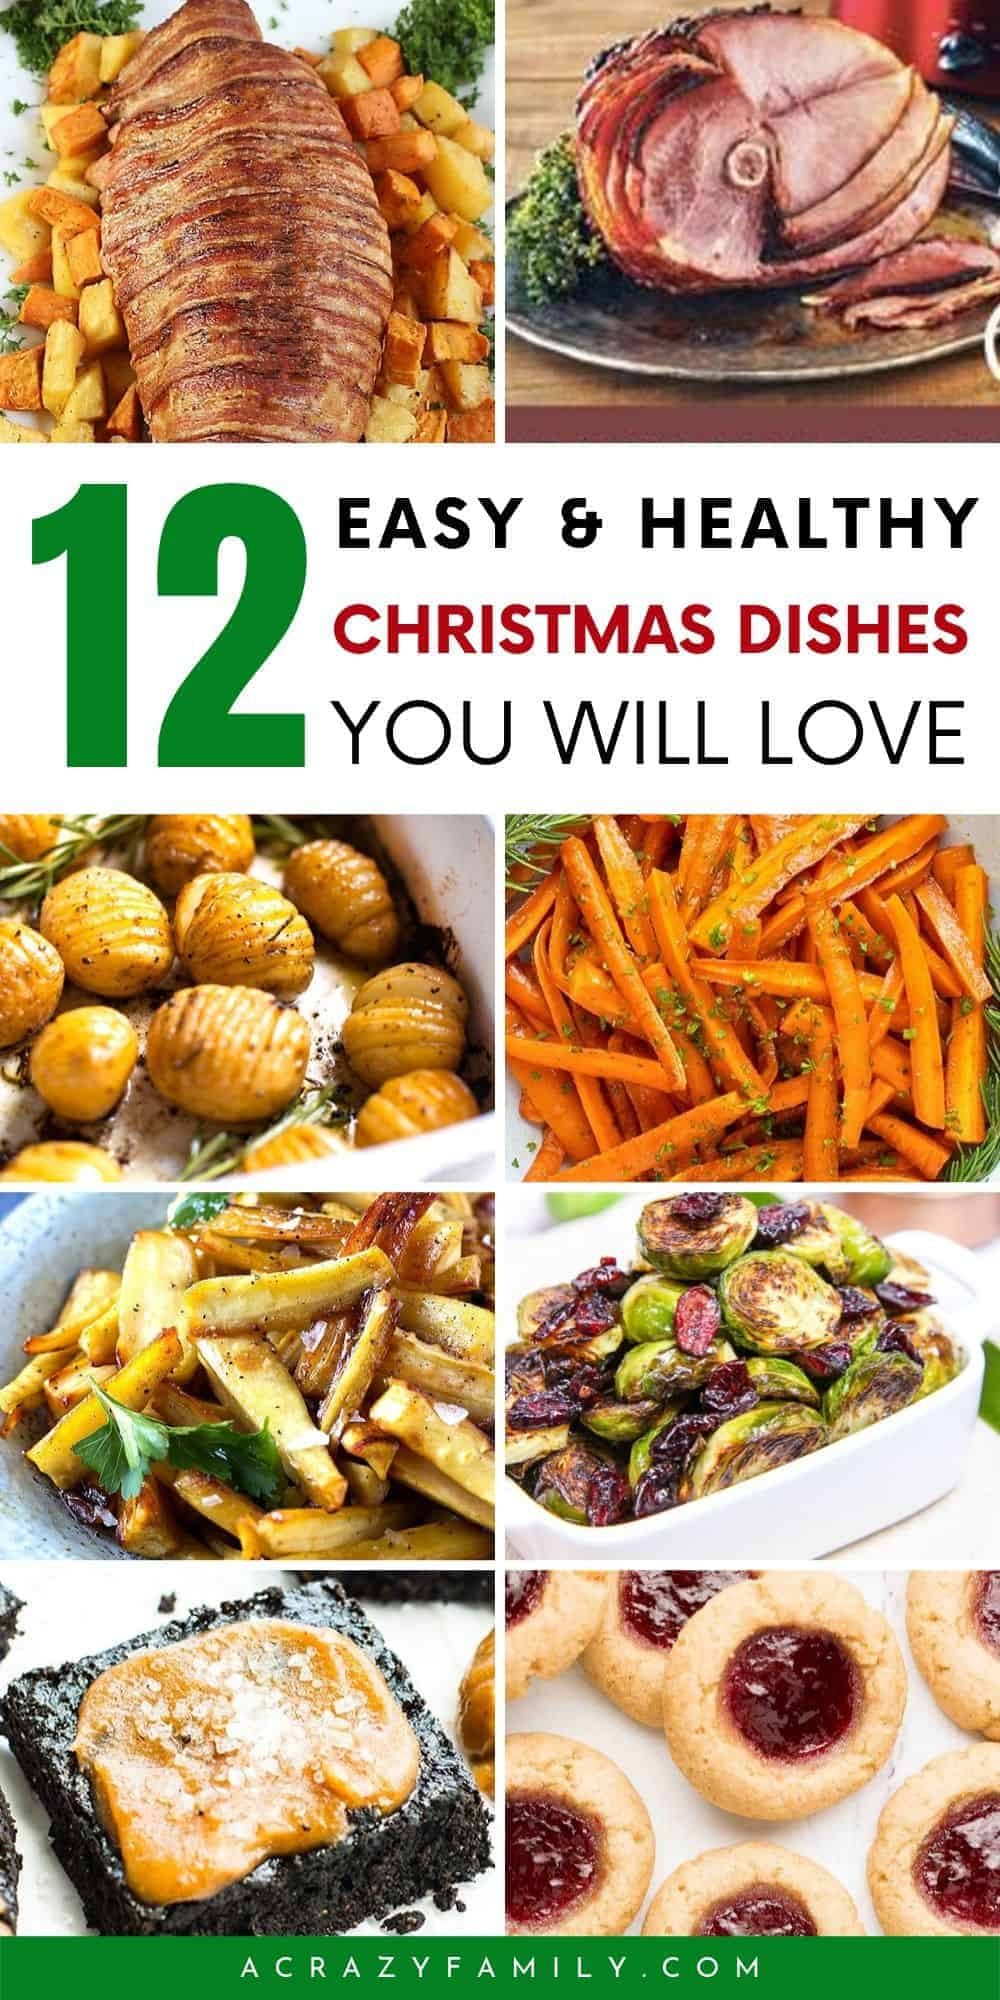 12 Super Healthy and Easy Christmas Dishes You Will Love